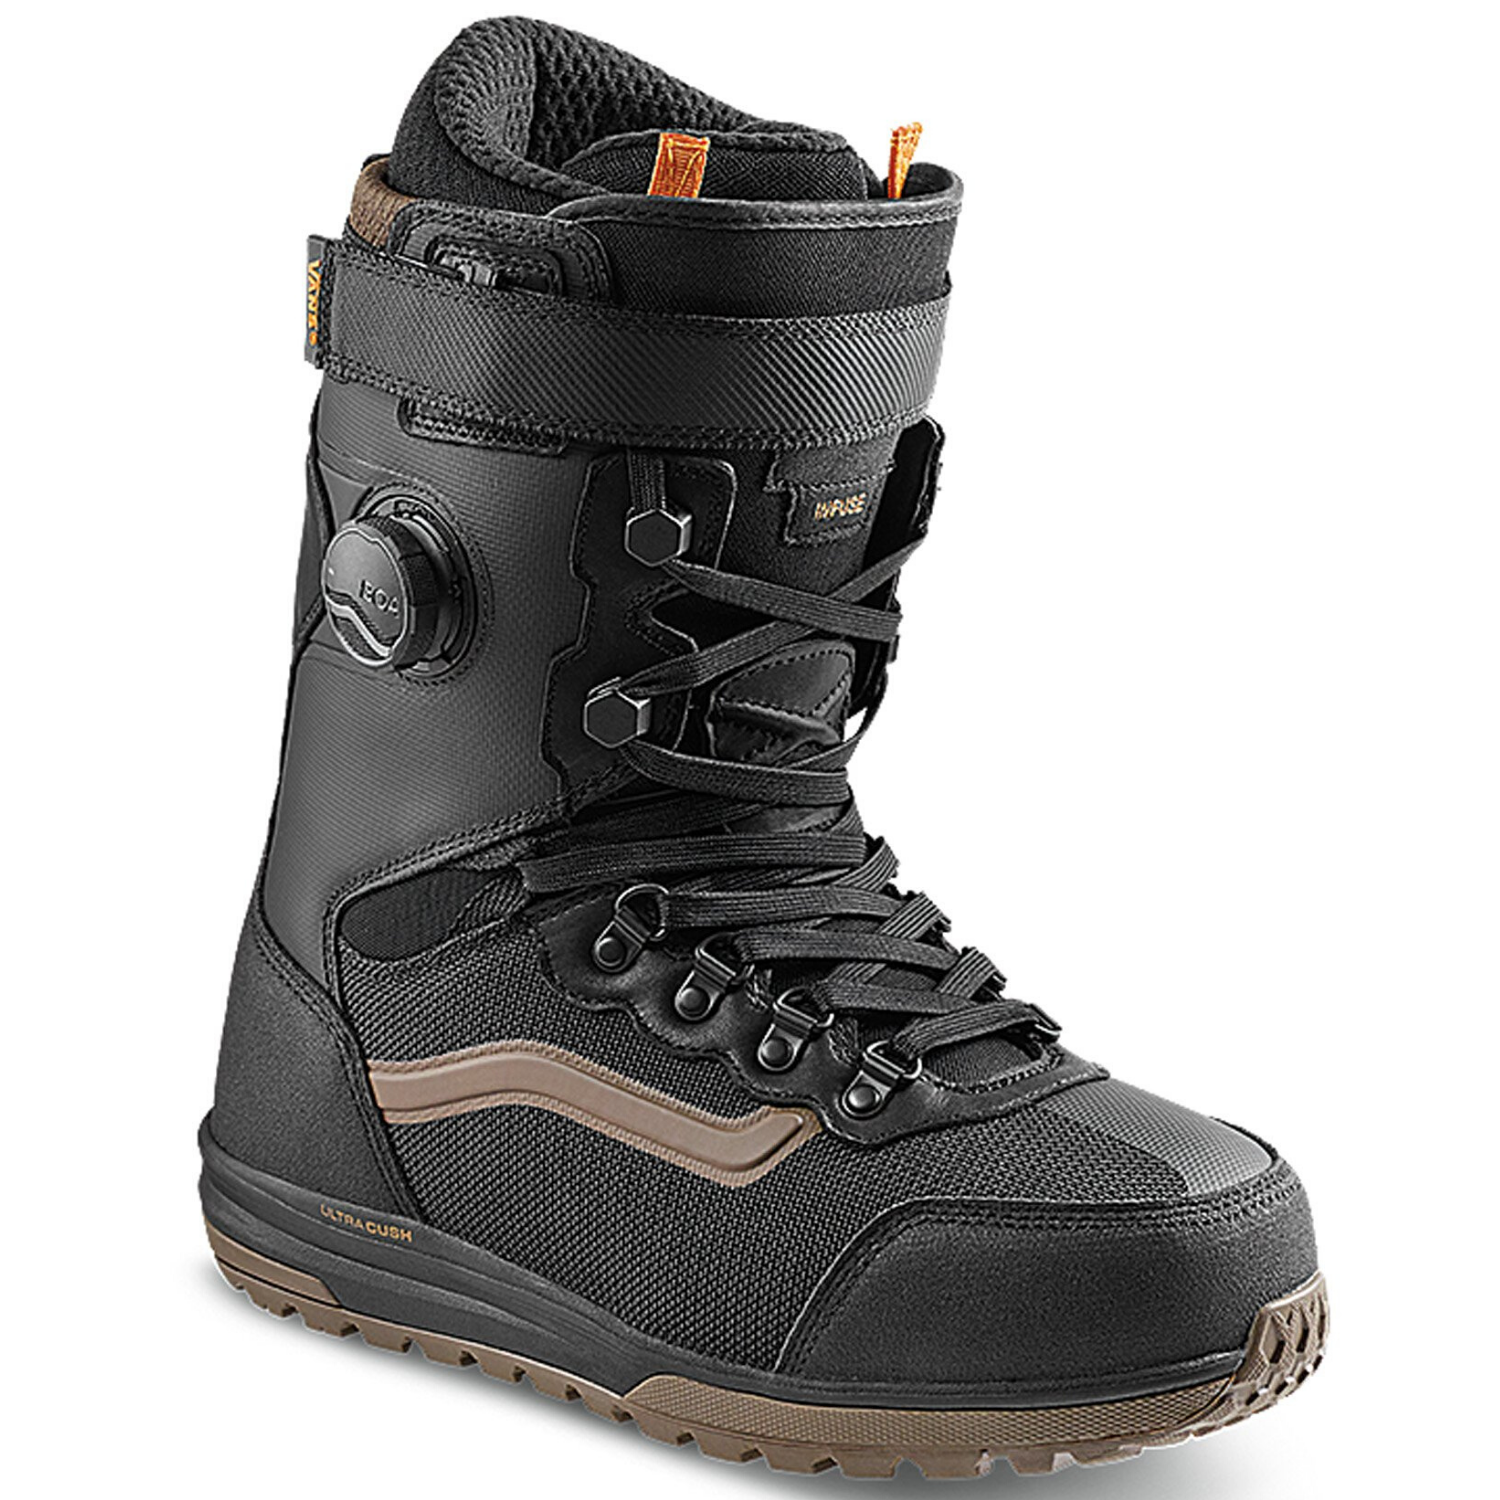 Vans Infuse 2021 Snowboarding Boots